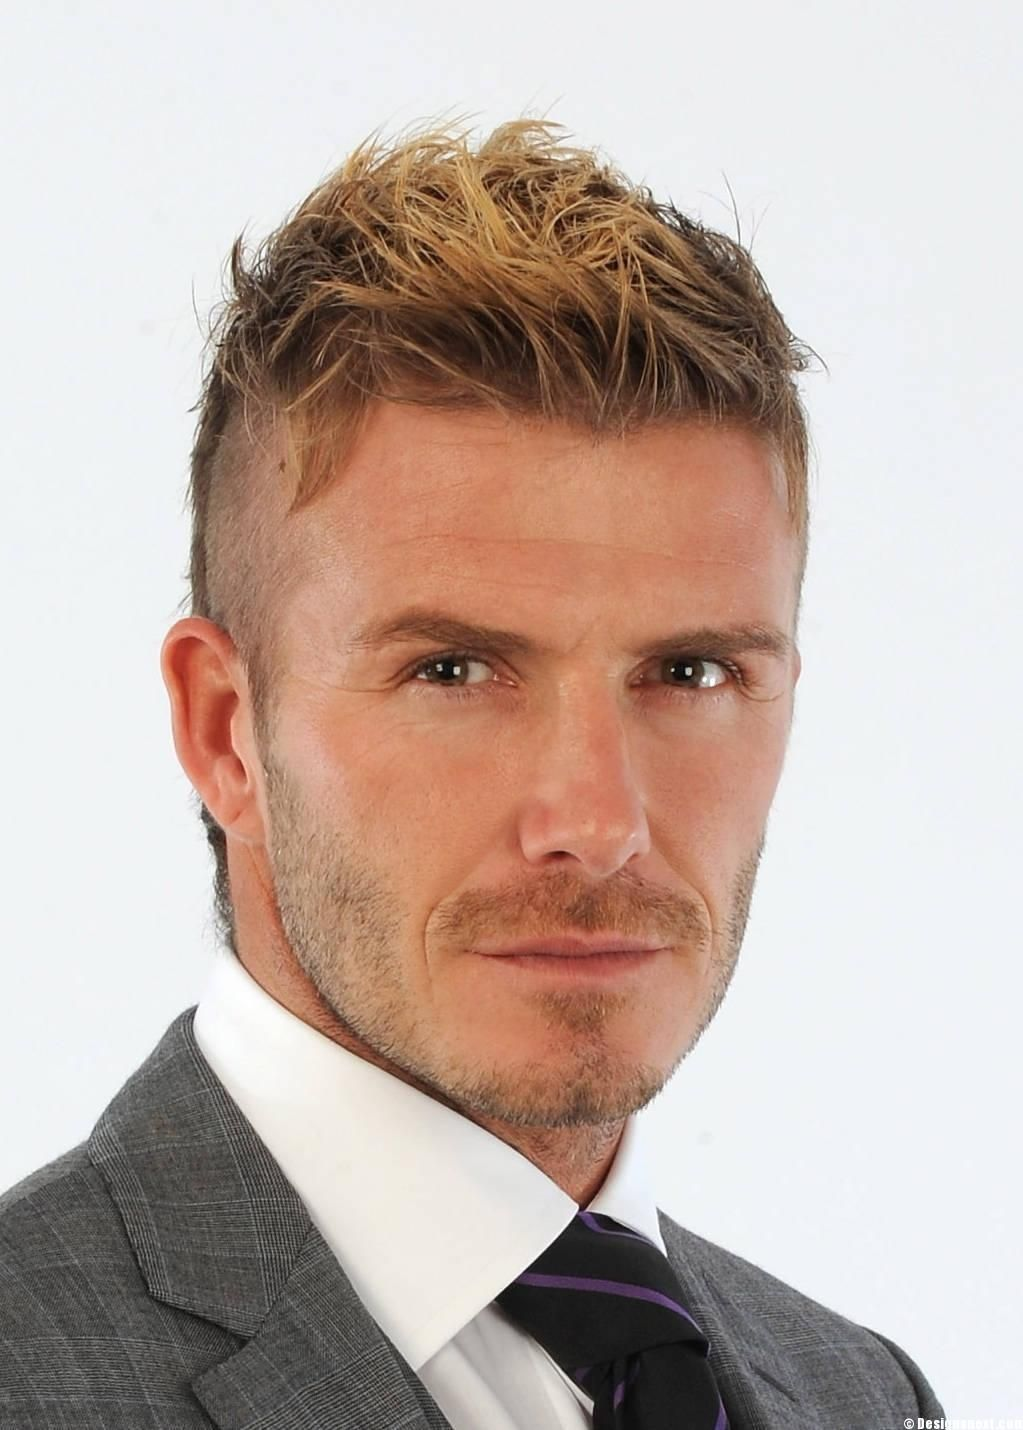 Short Haircuts For Men Italian Hairstyles Model Fashion Thin Hair Men Mens Hairstyles Short David Beckham Hairstyle